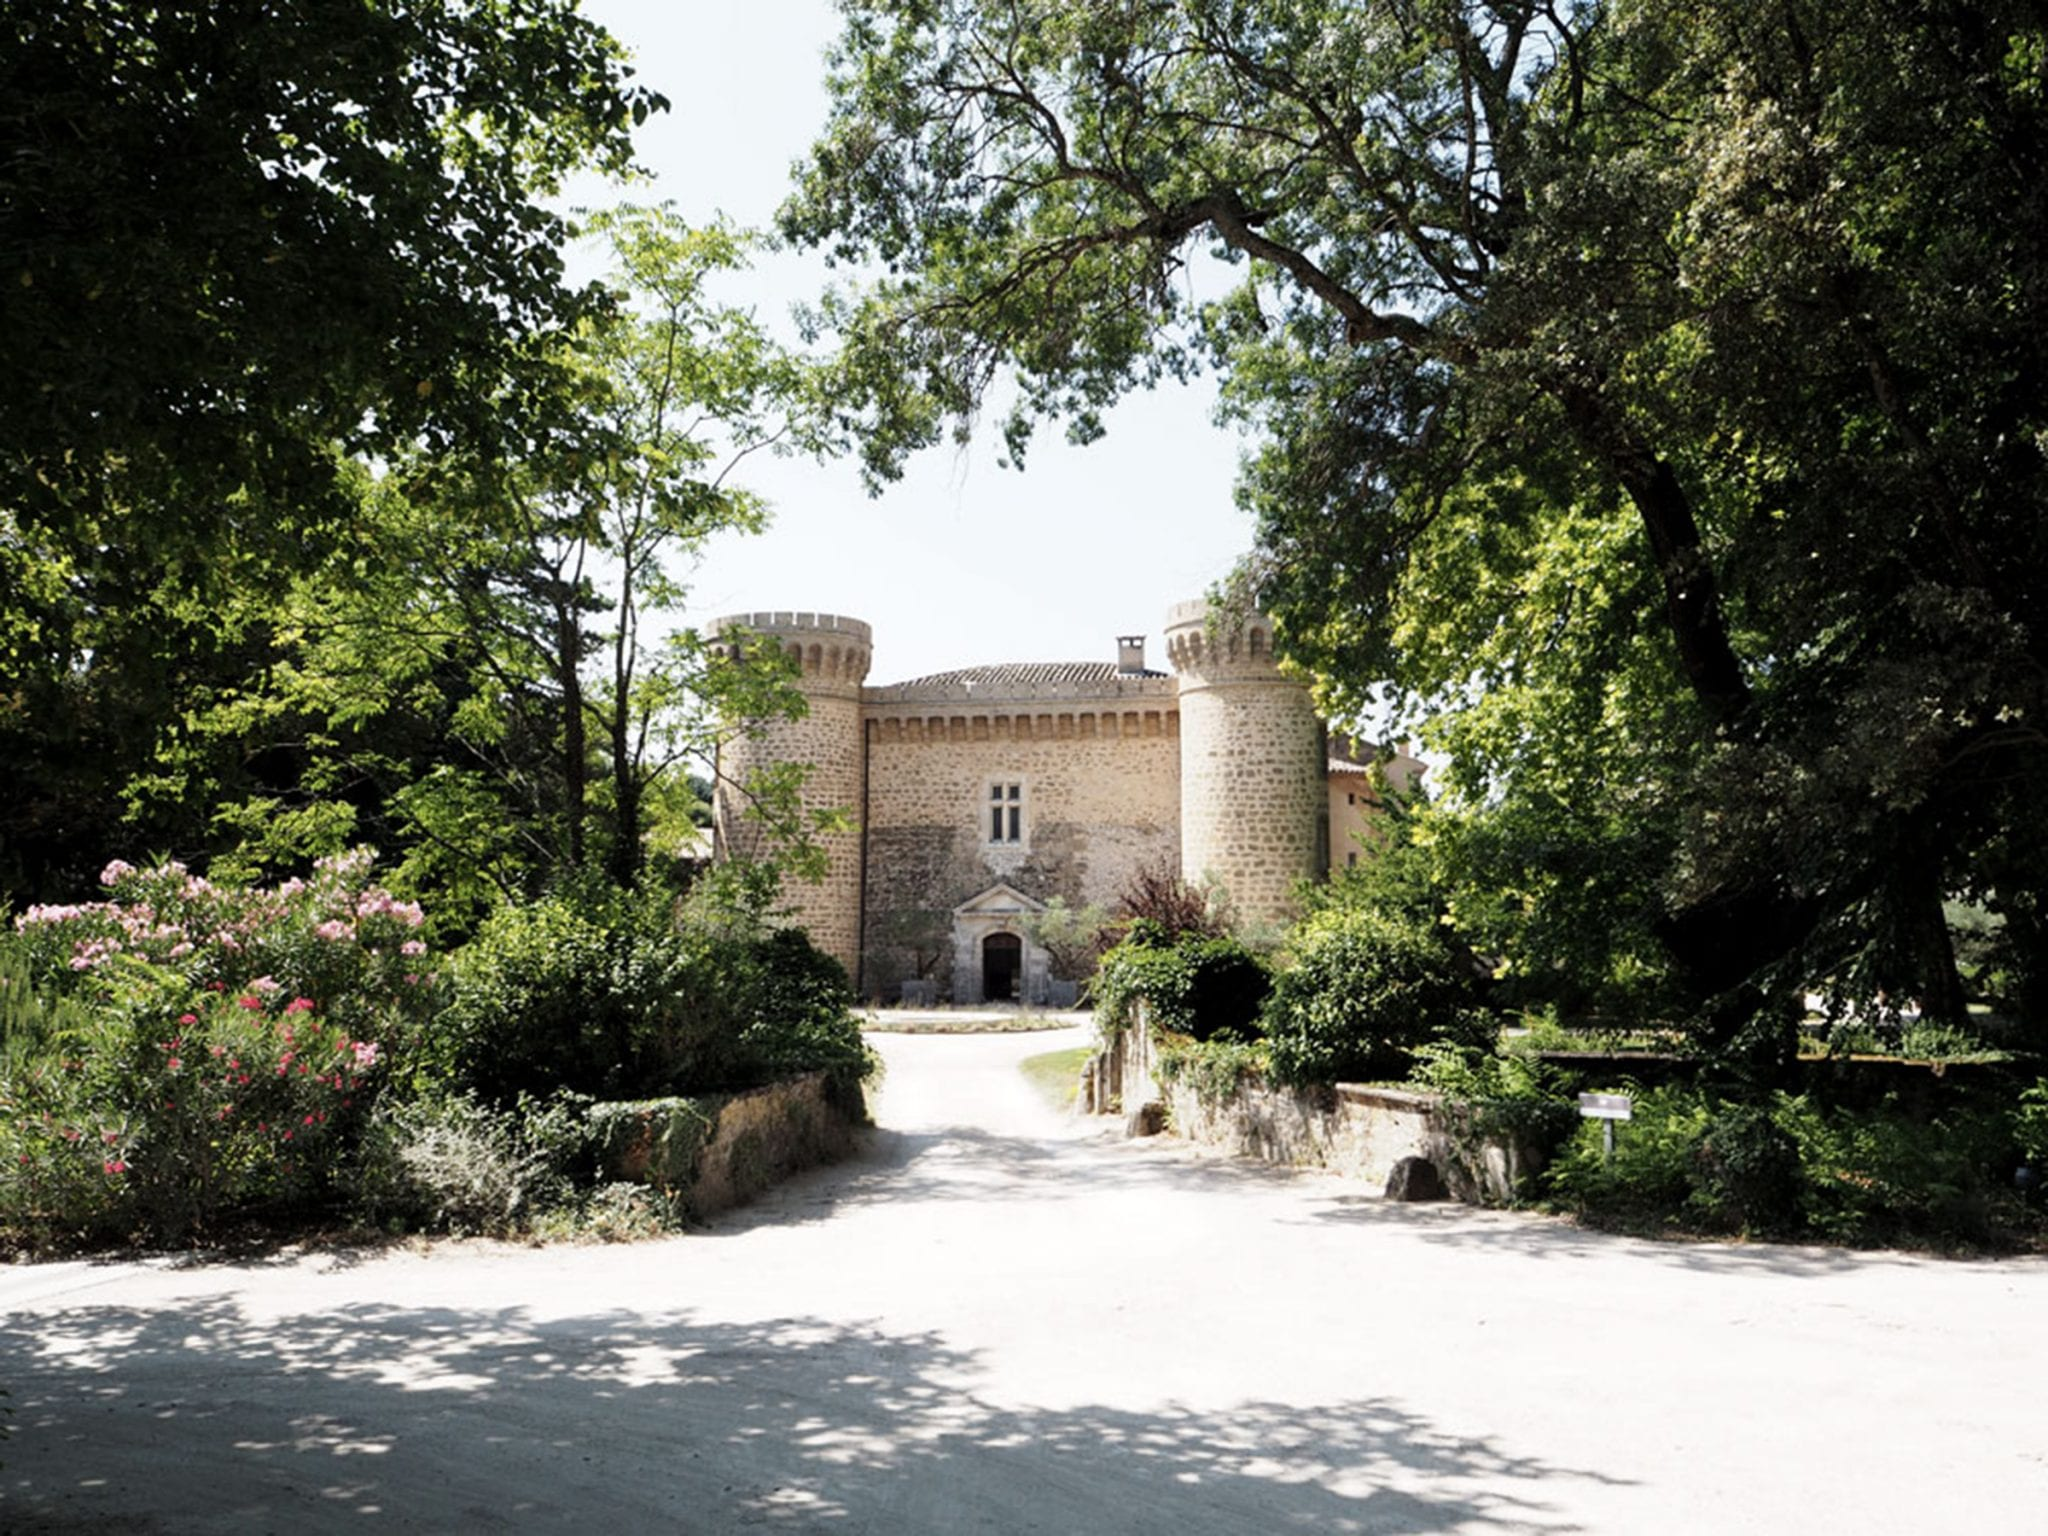 Wedding Venue, Château de Massillan, Uchaux, France